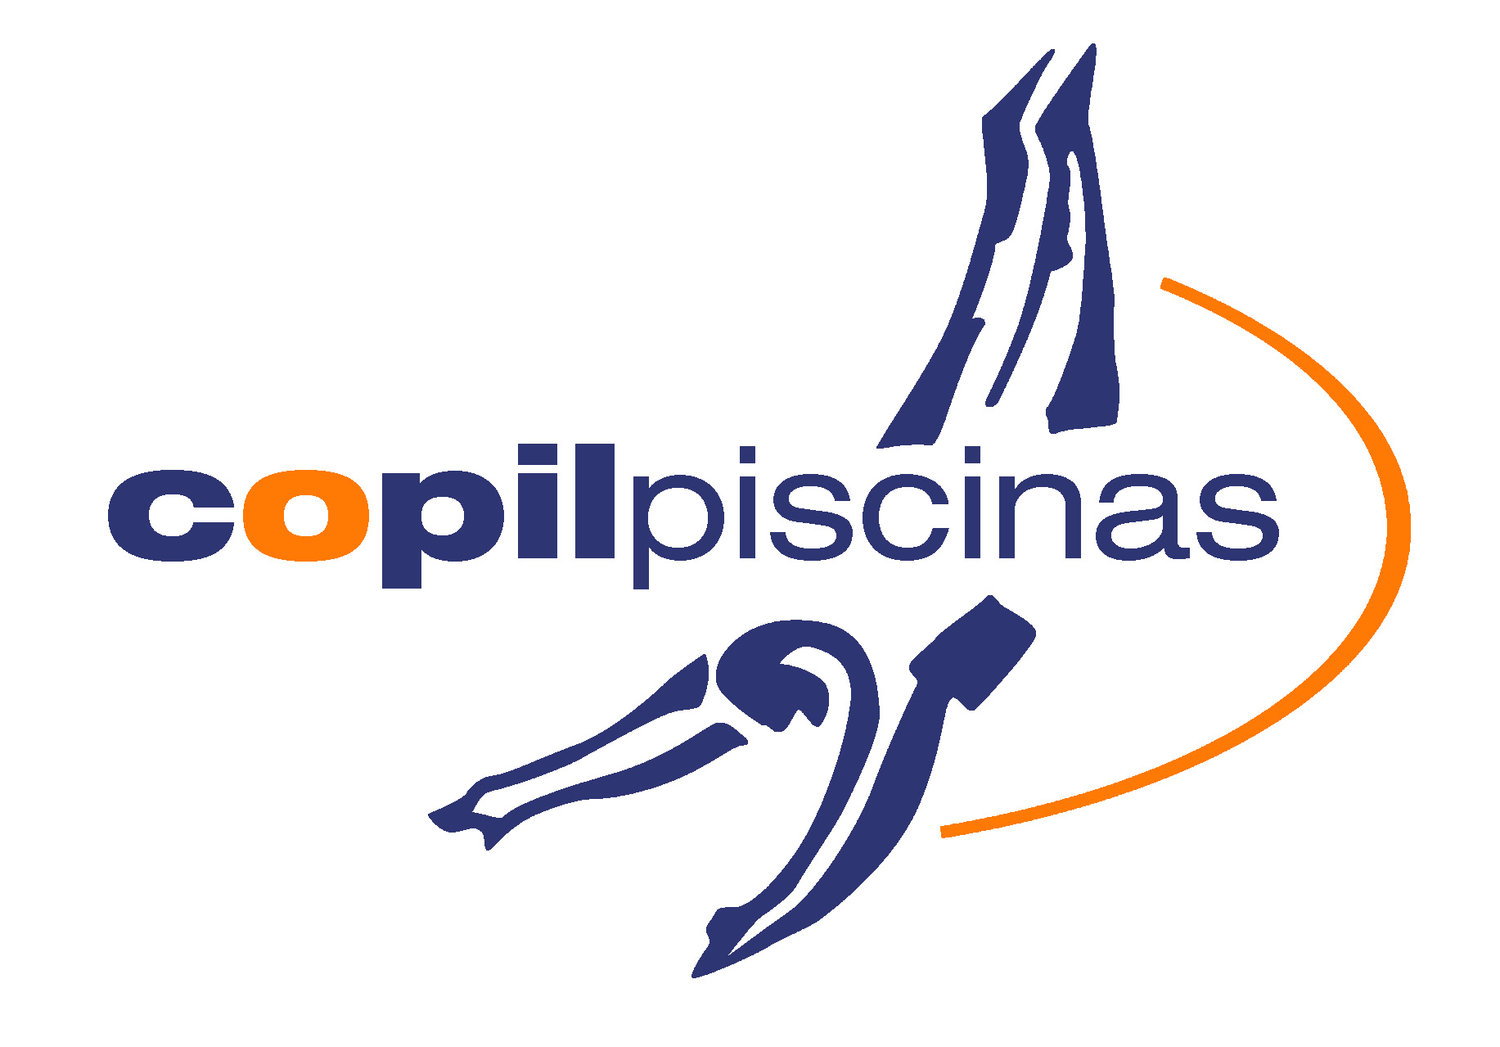 Copil Piscinas